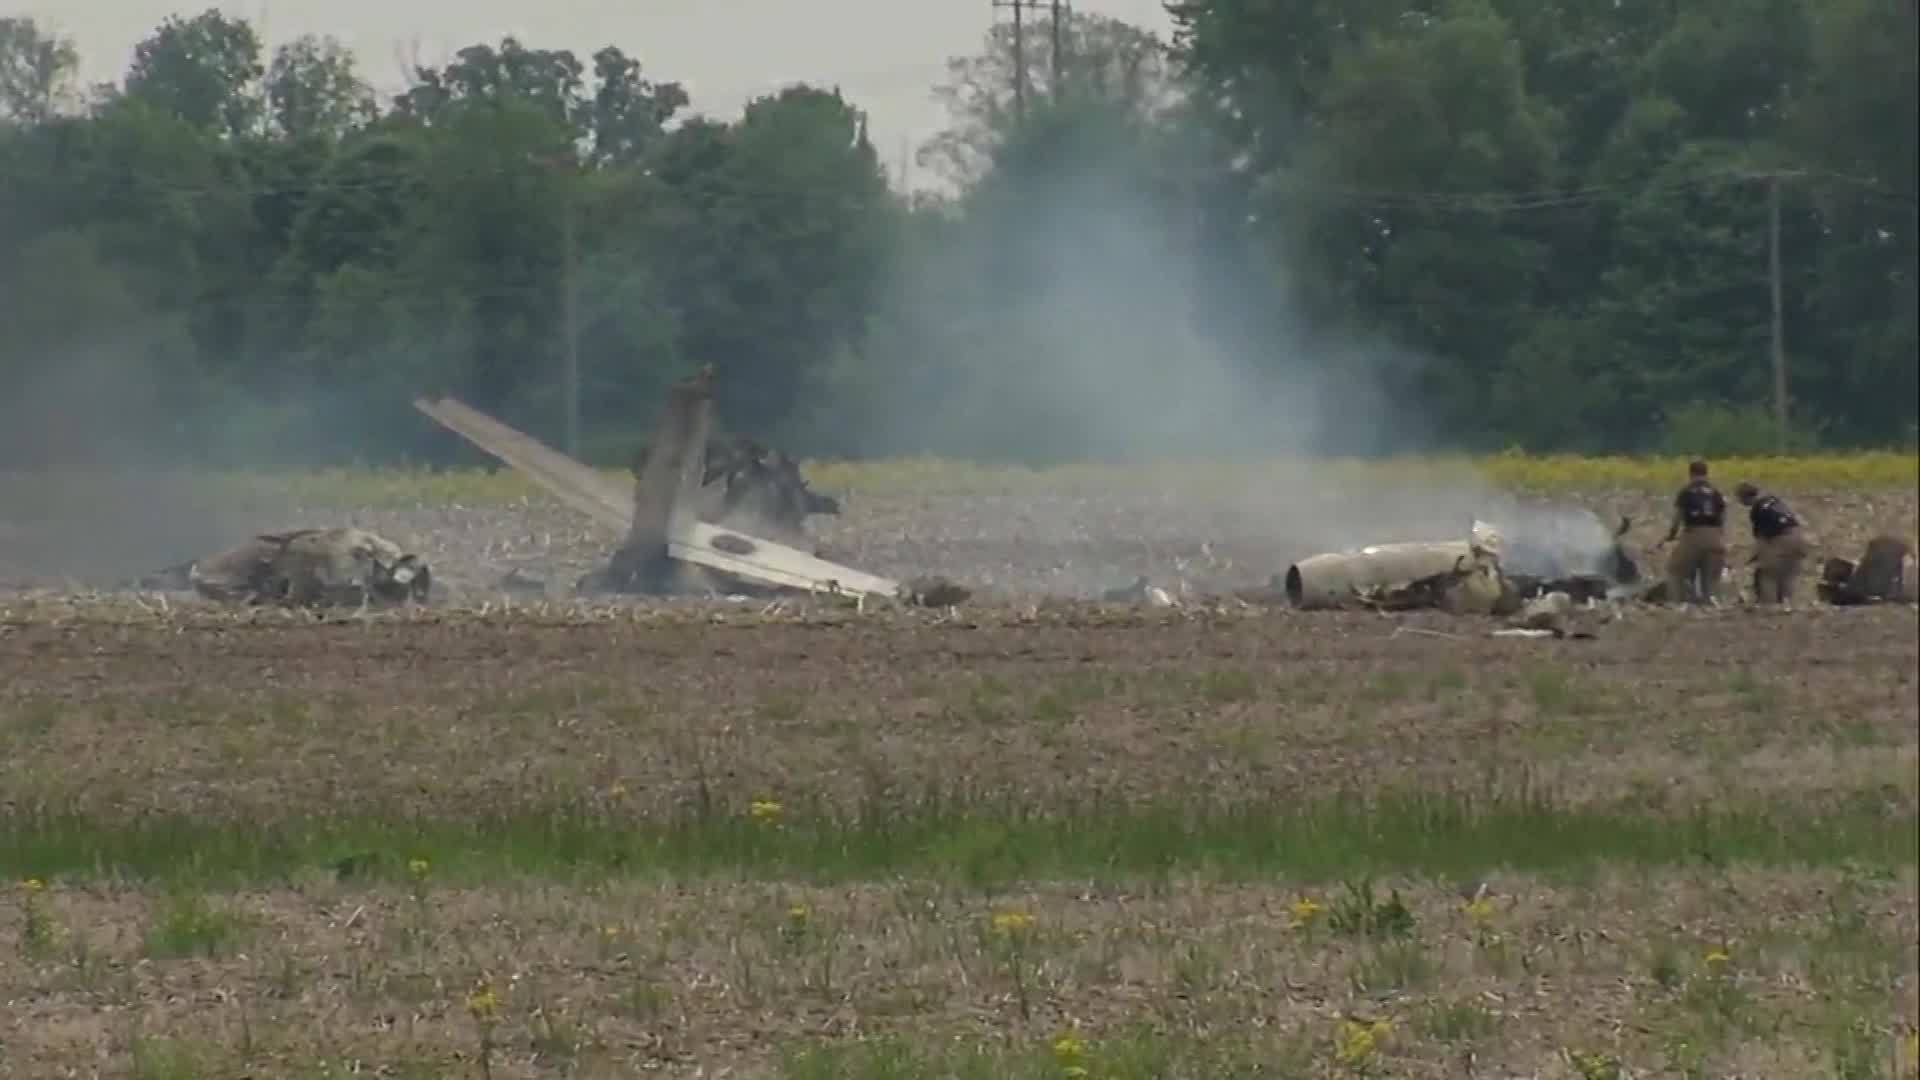 Two dead in plane crash in Indiana